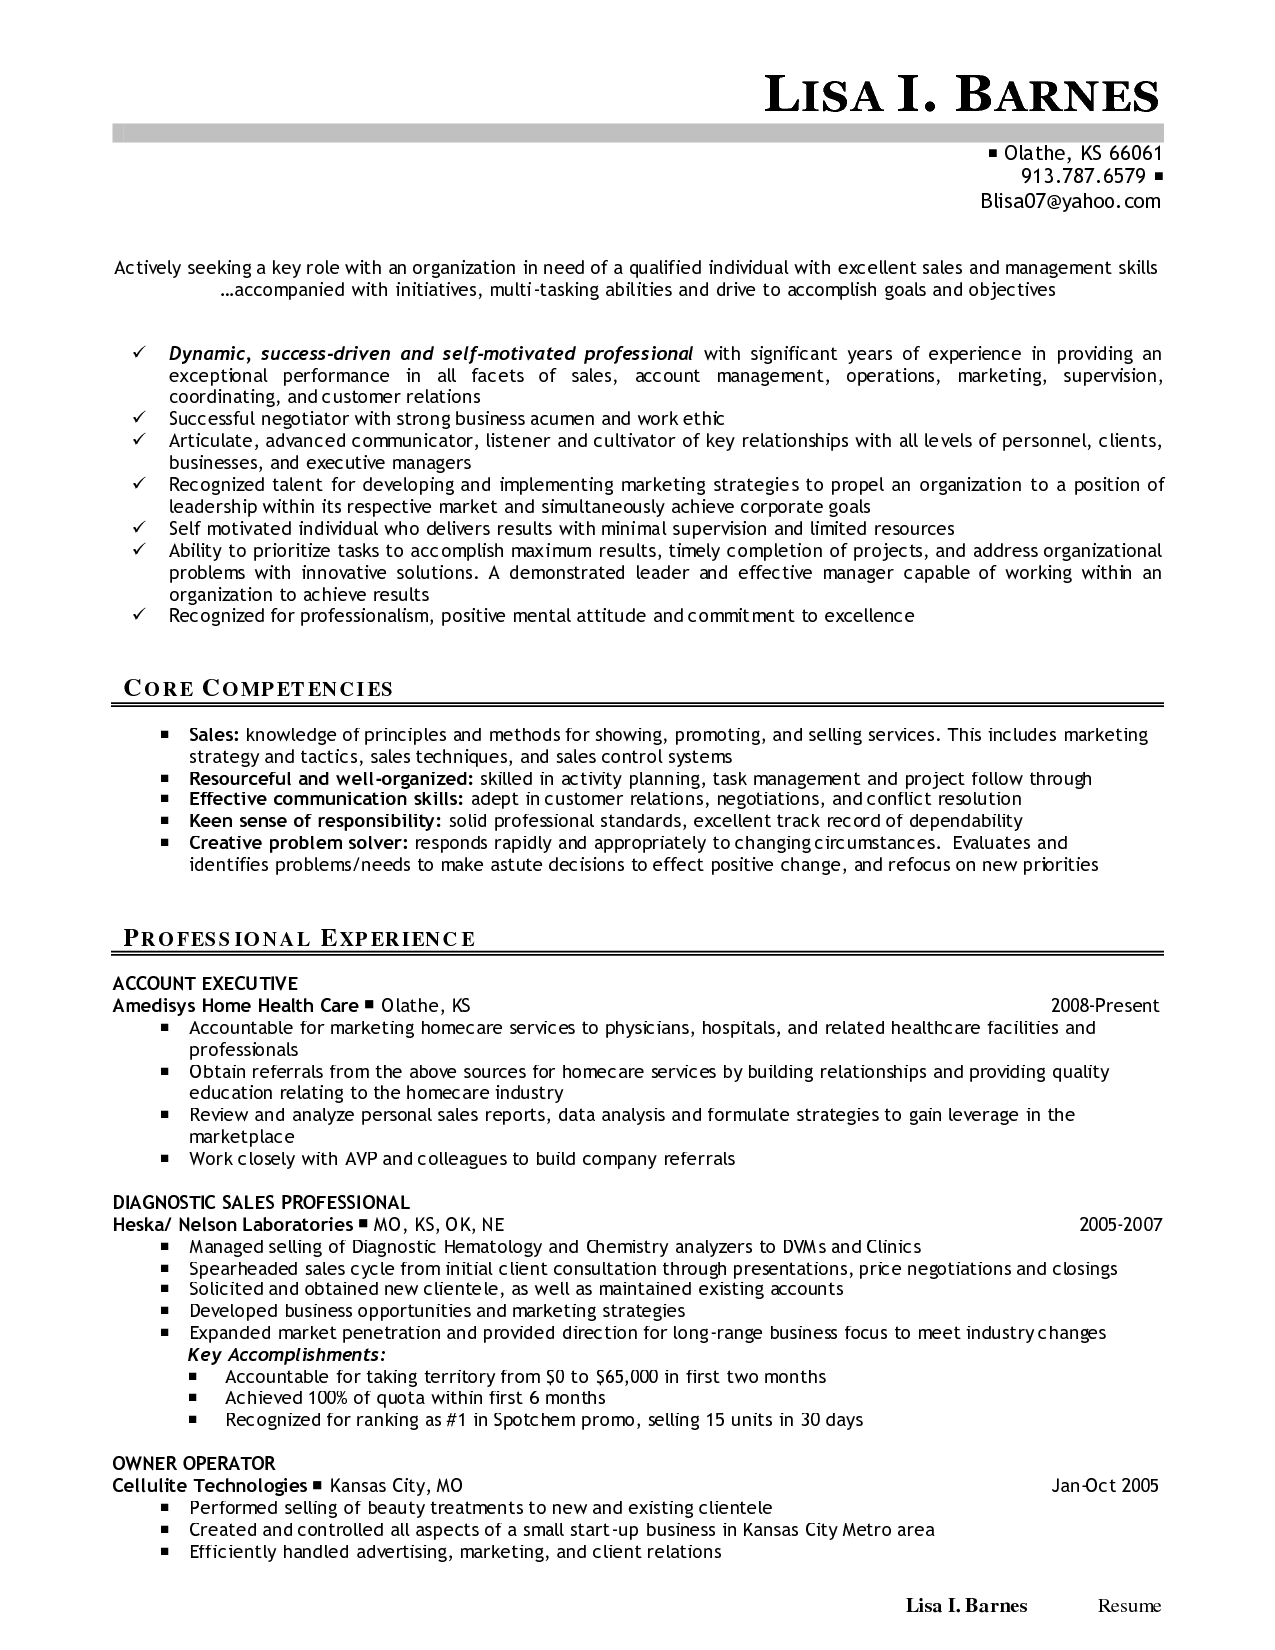 Medical Device Sales Resume Biomedical Sales Engineer Sample Resume Template Financial